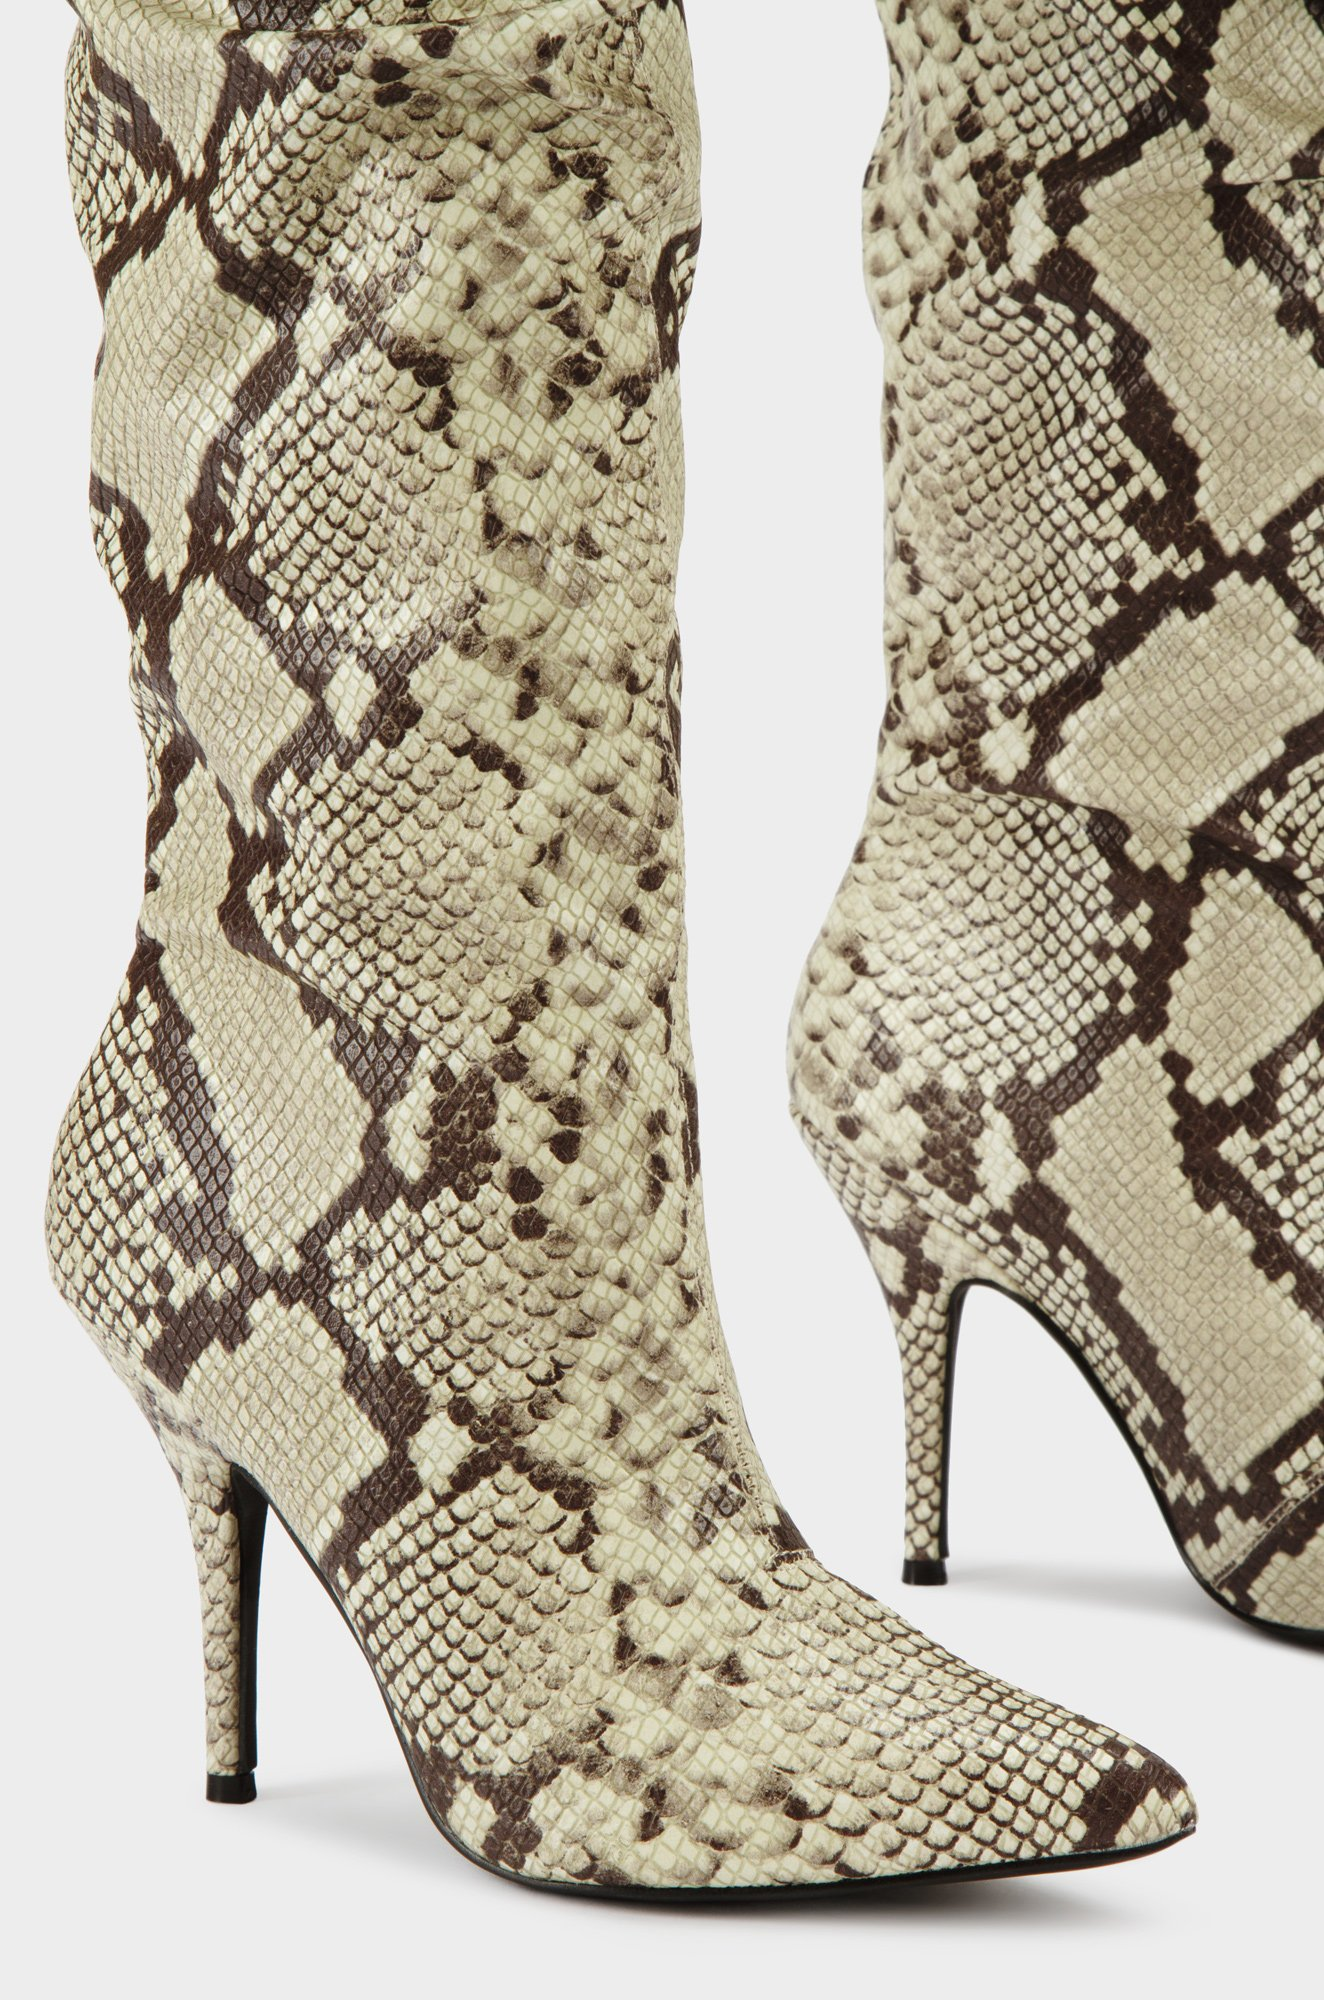 Cape-Robbin-Bown-Snake-Thigh-High-Slouch-Pointed-Toe-Over-The-Knee-Stiletto-Boot thumbnail 46